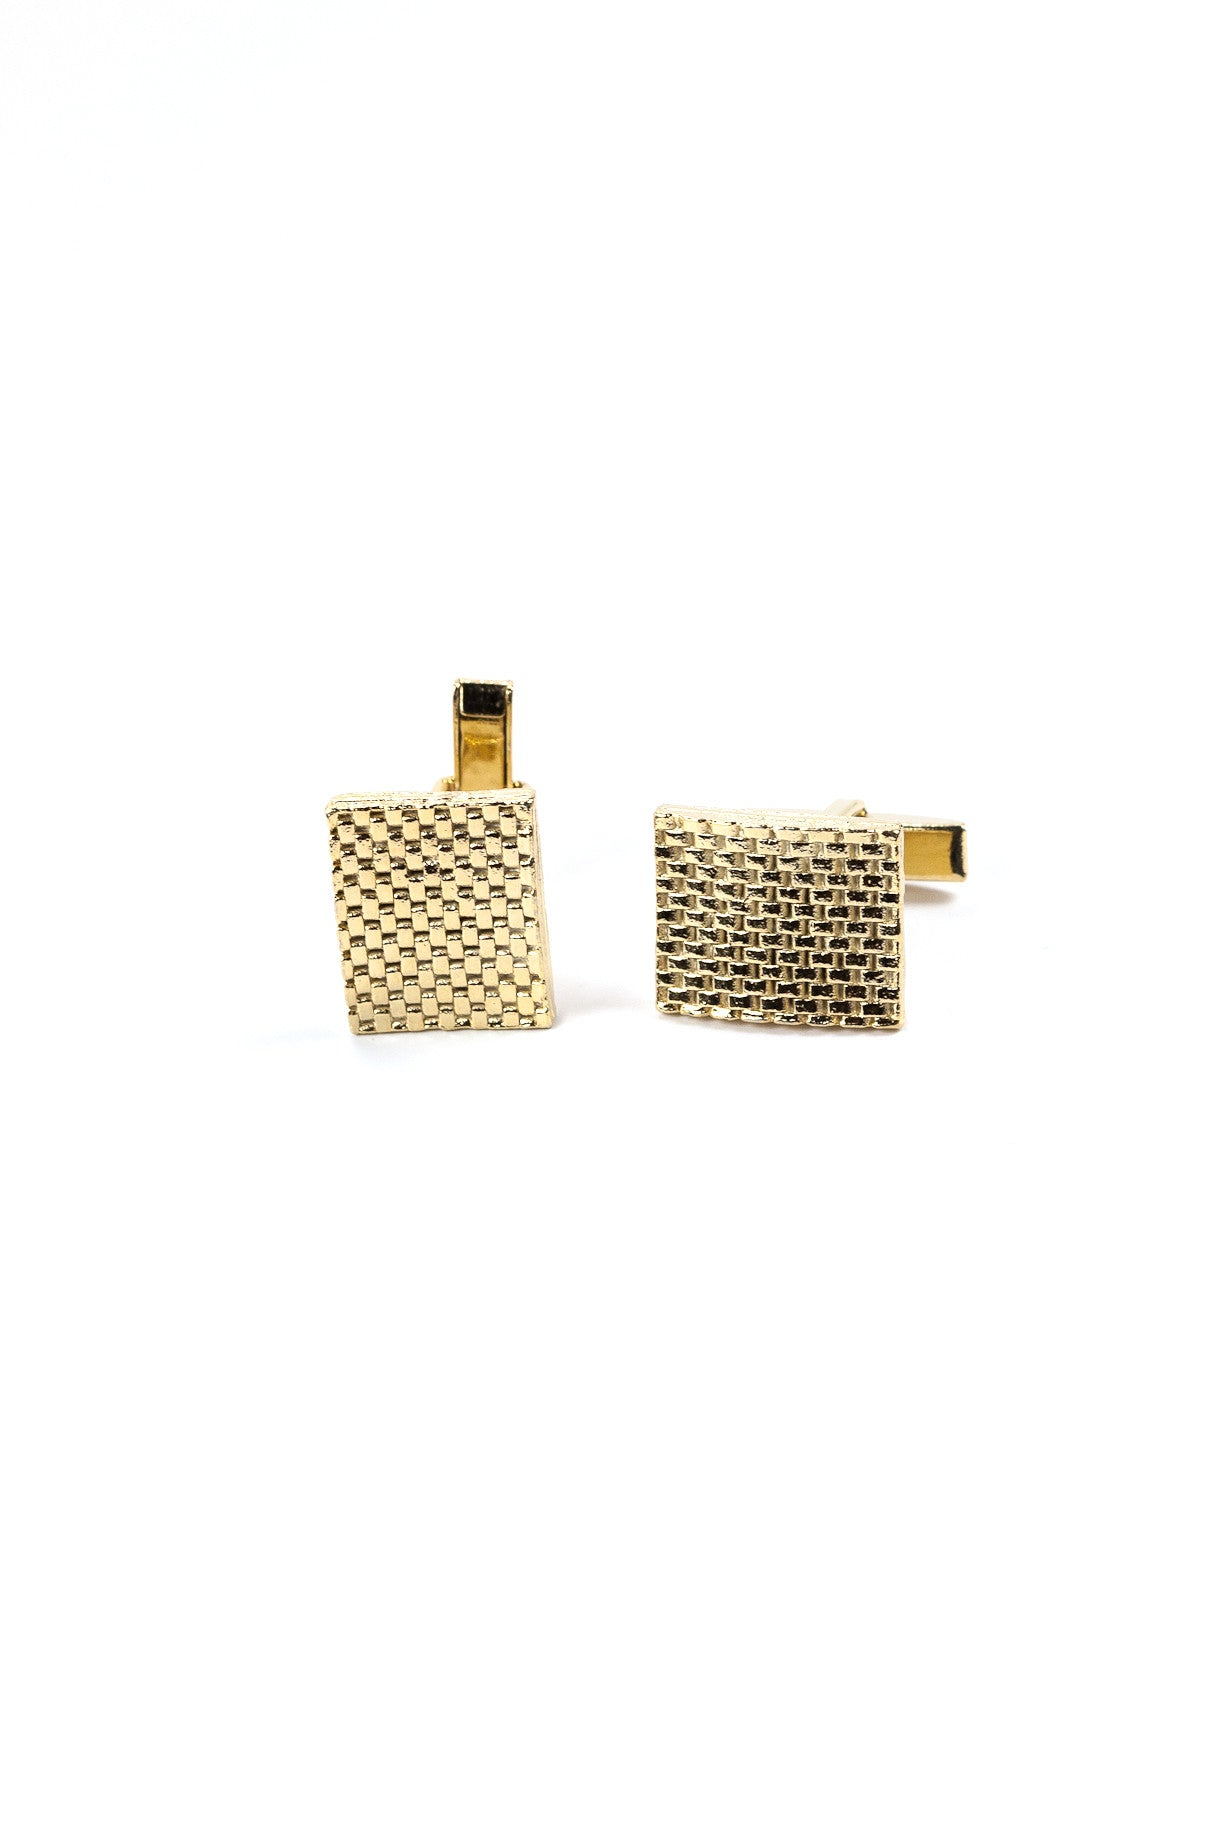 70's__Vintage__Chain Cuff Links